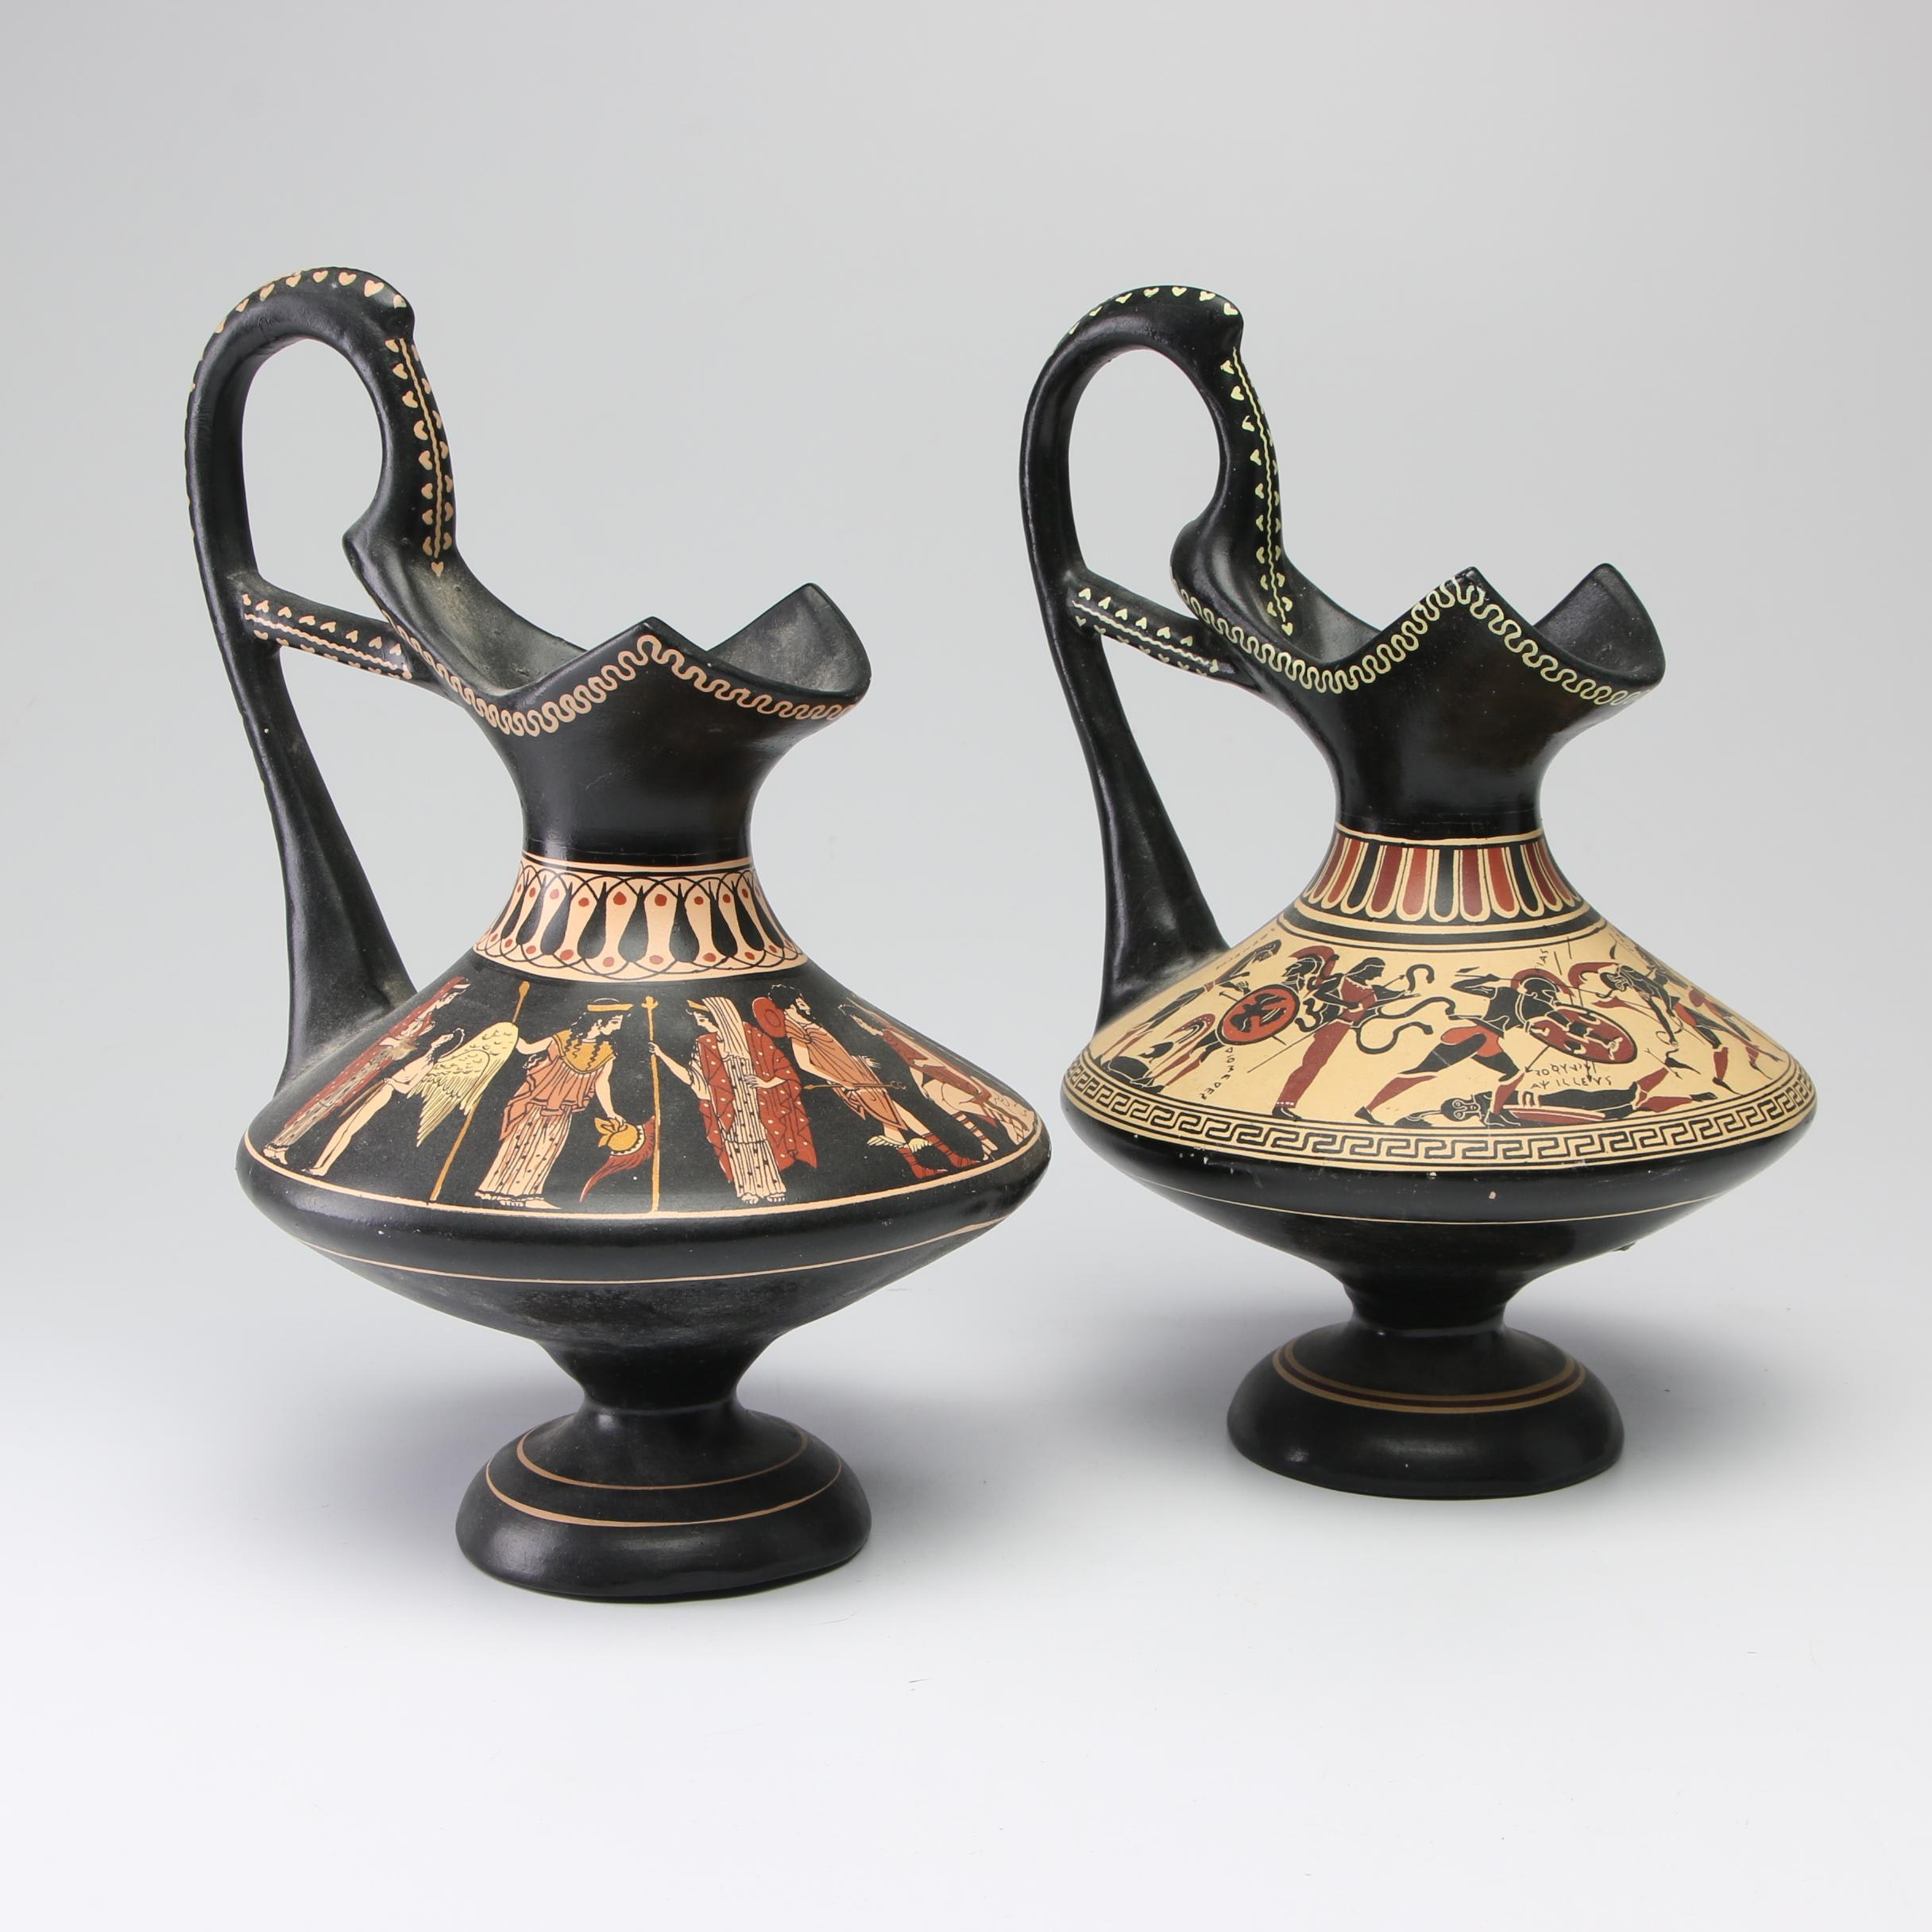 D. Vassilopoulos Greek Pottery Replica Ewers, 1960s